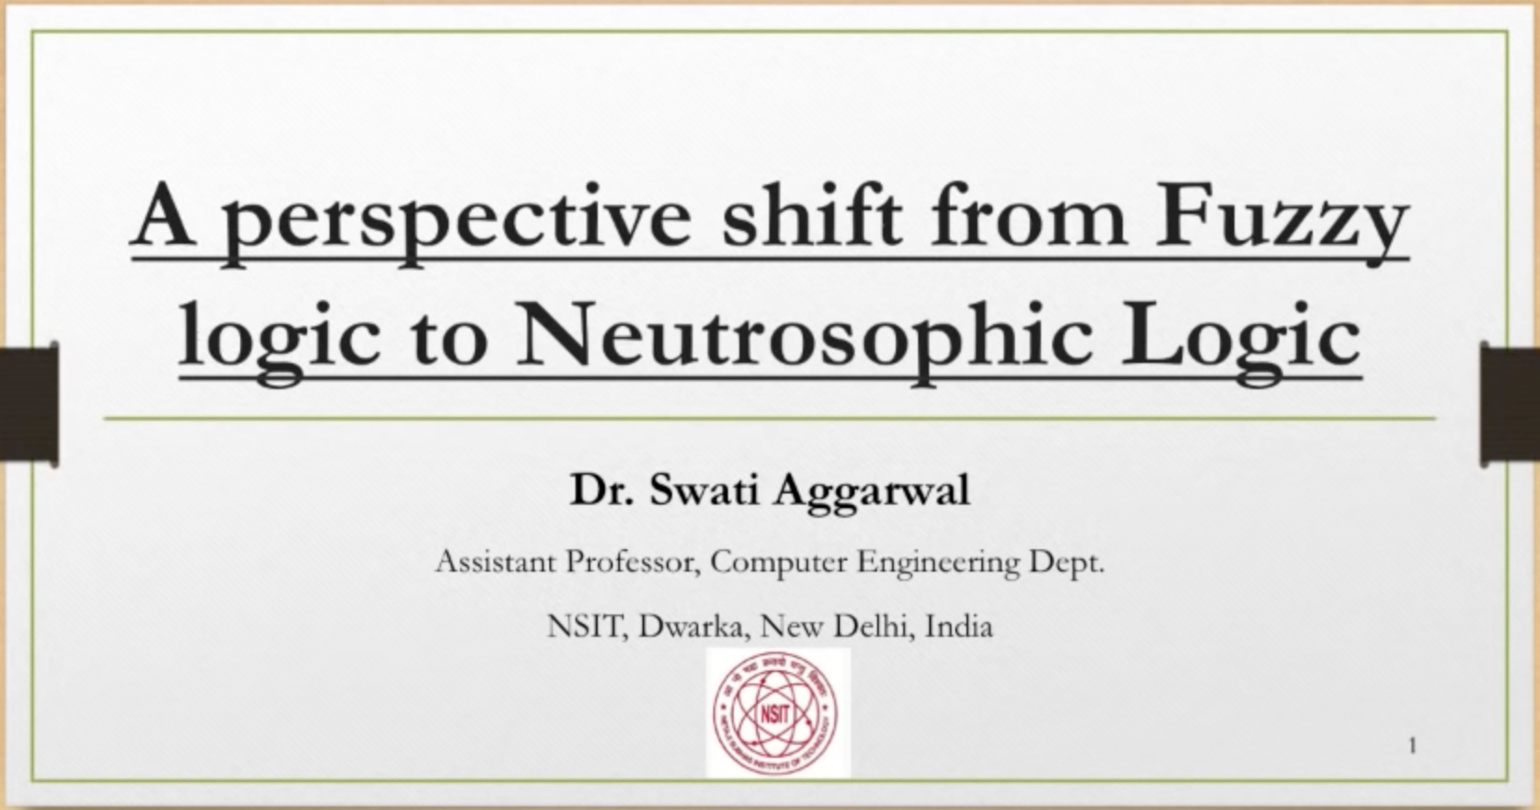 A perspective shift from Fuzzy logic to Neutrosophic Logic - Swati Aggarwal